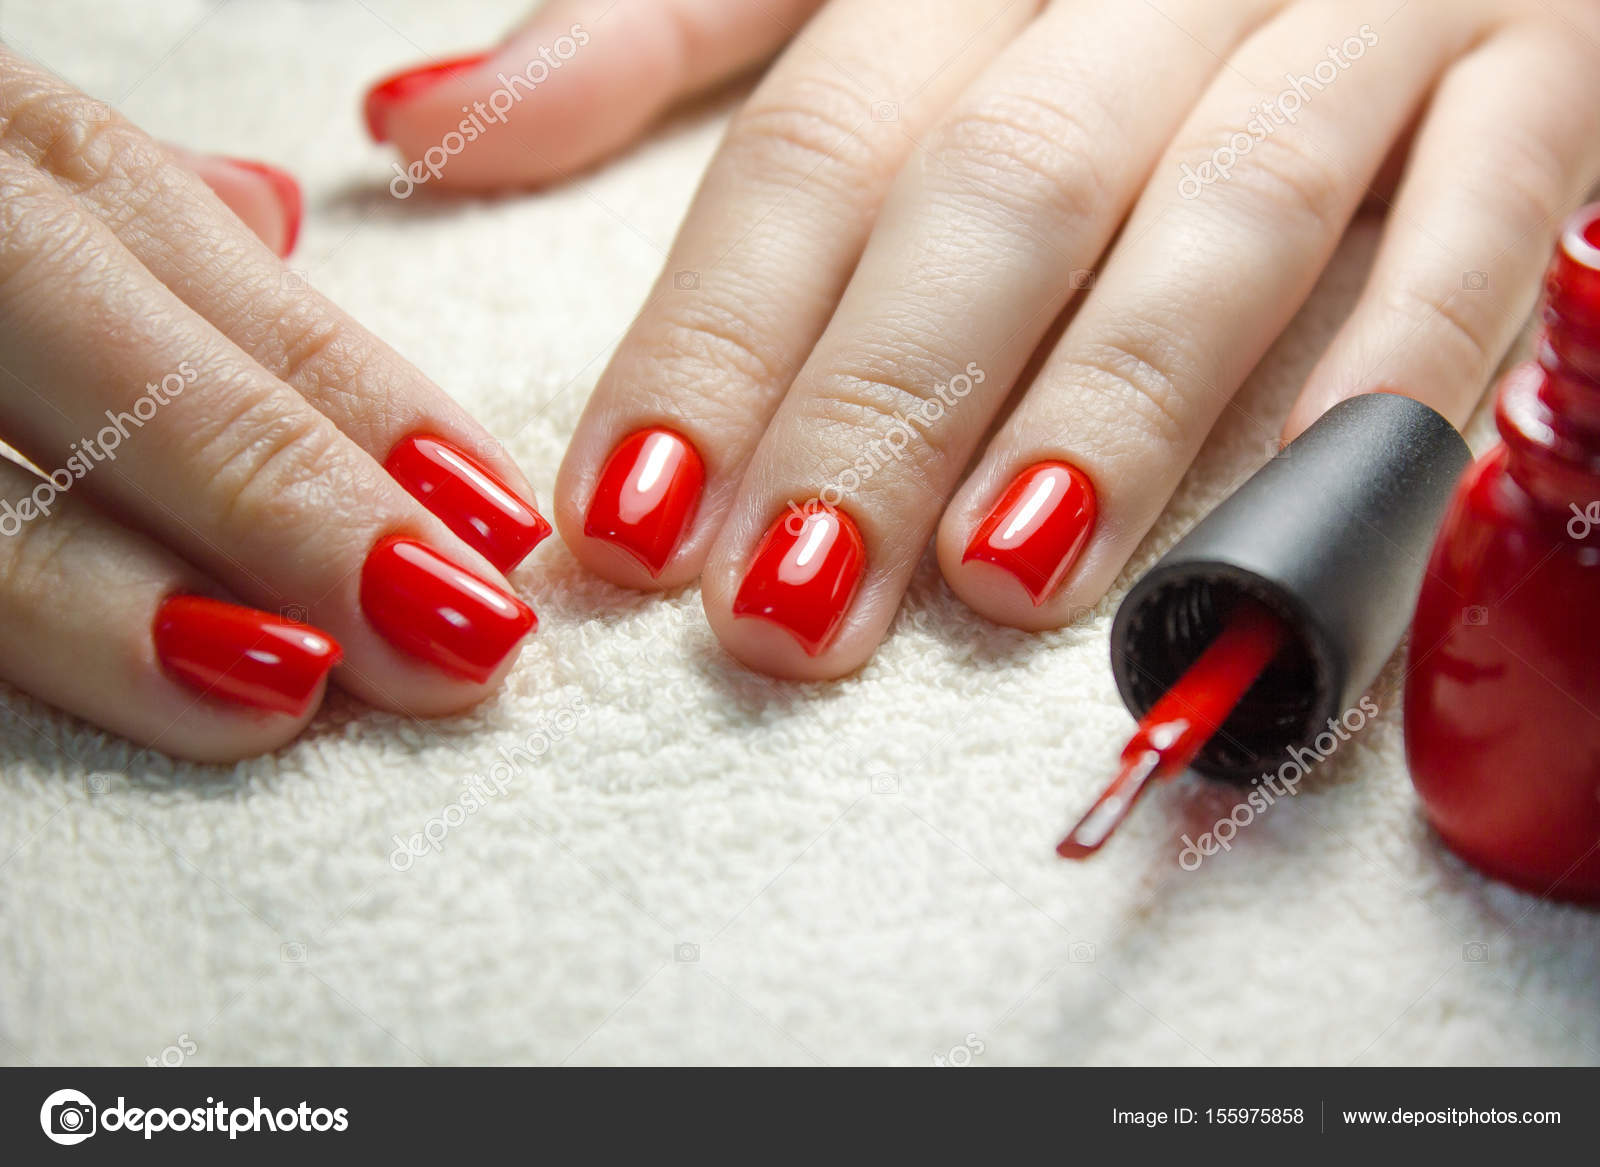 Beautiful manicured womans nails with red nail polish on soft white ...